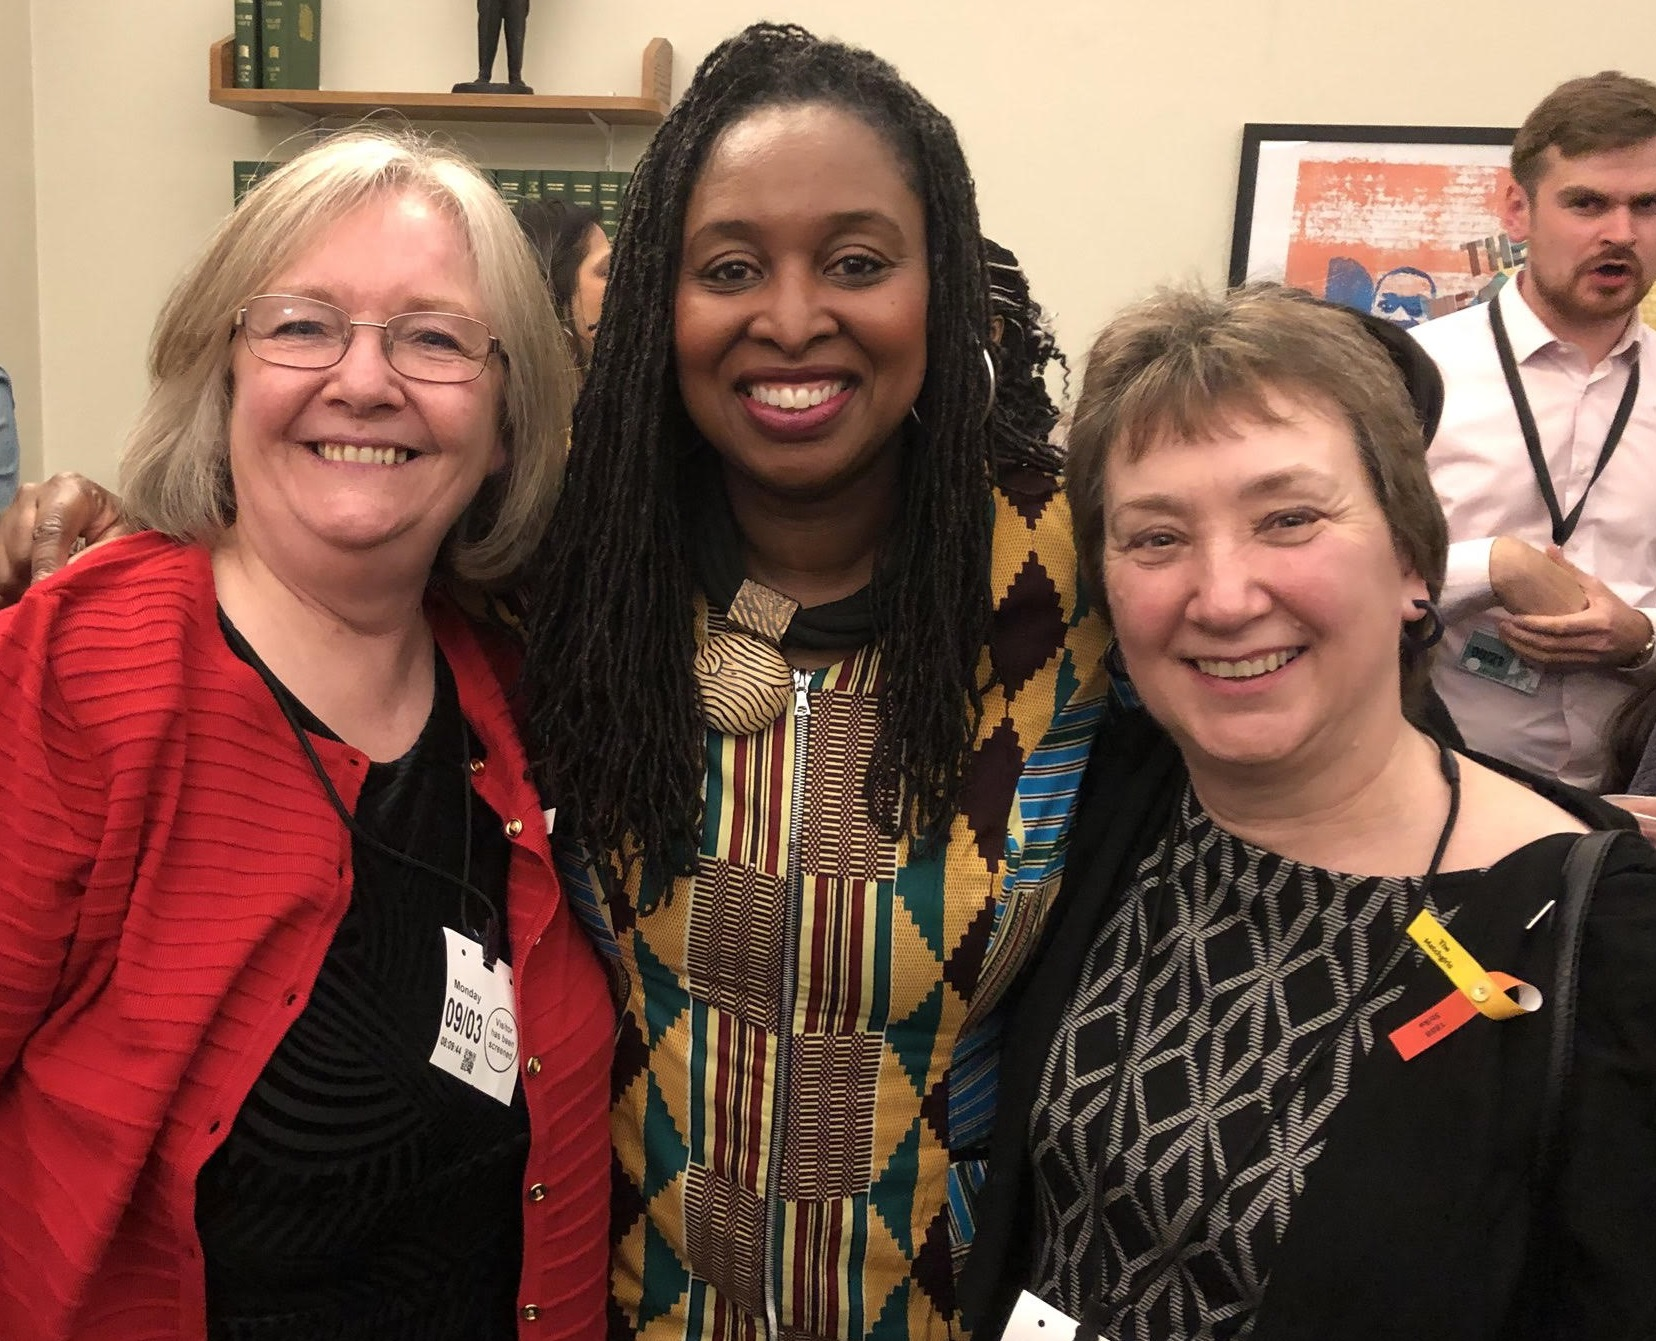 Barbara Plant (right) with Kathy Abubakir and Dawn Butler